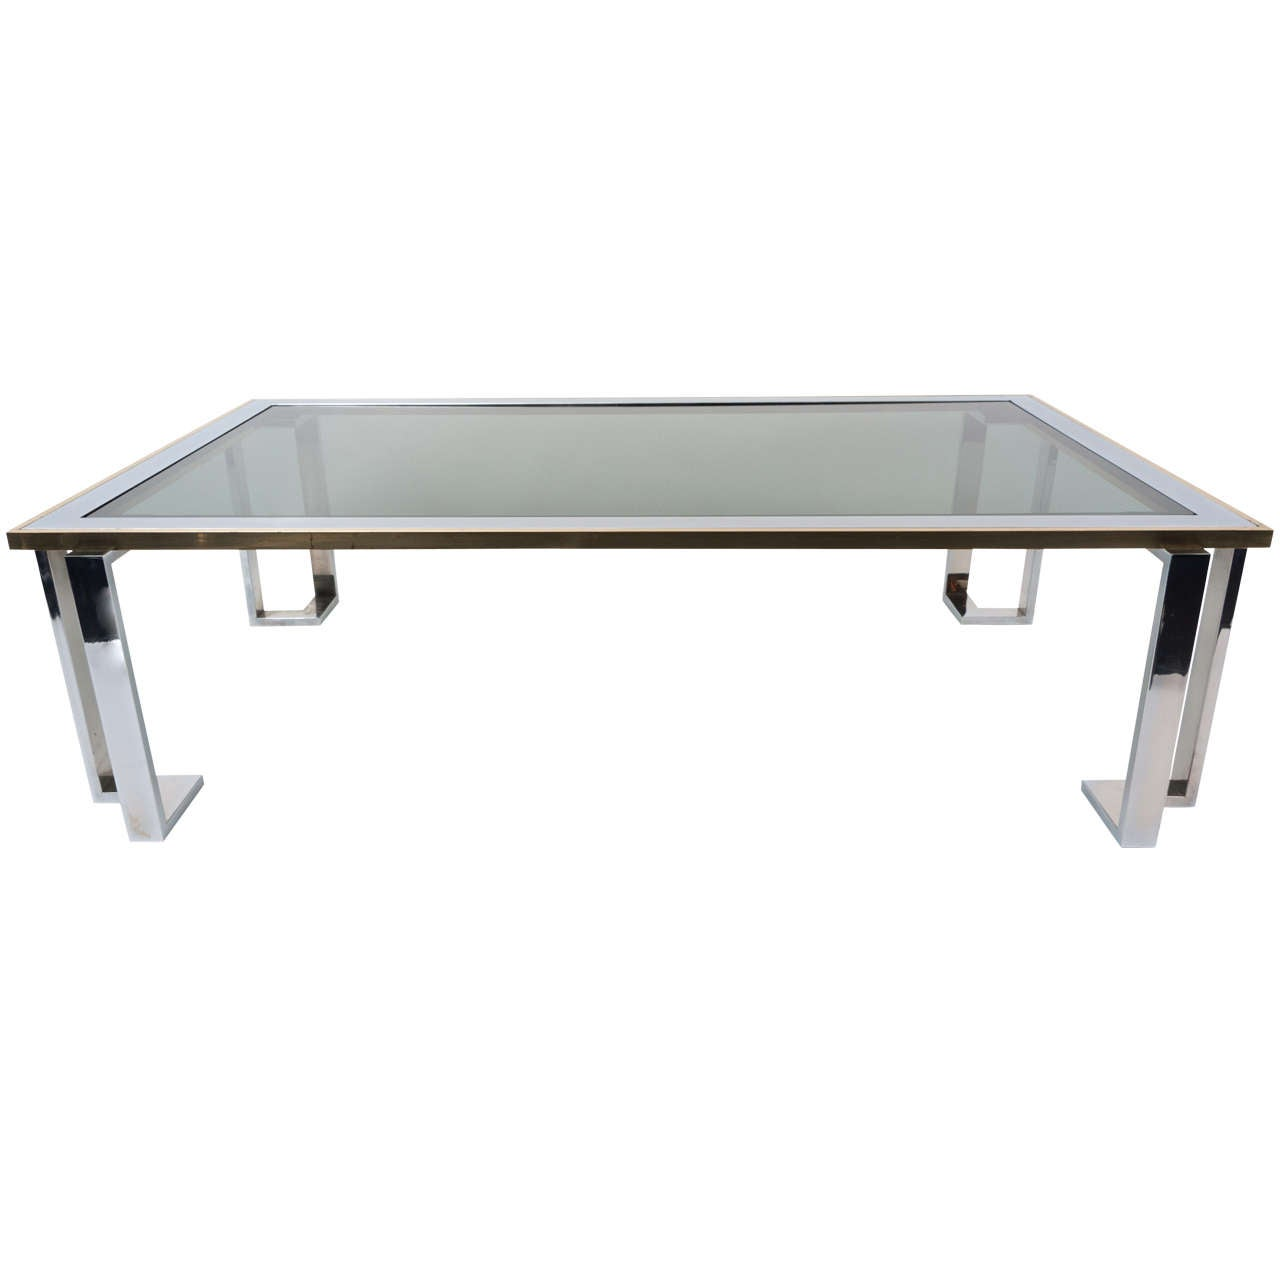 Romeo Rega Glass And Chrome Coffee Table With Smoked Glass At 1stdibs